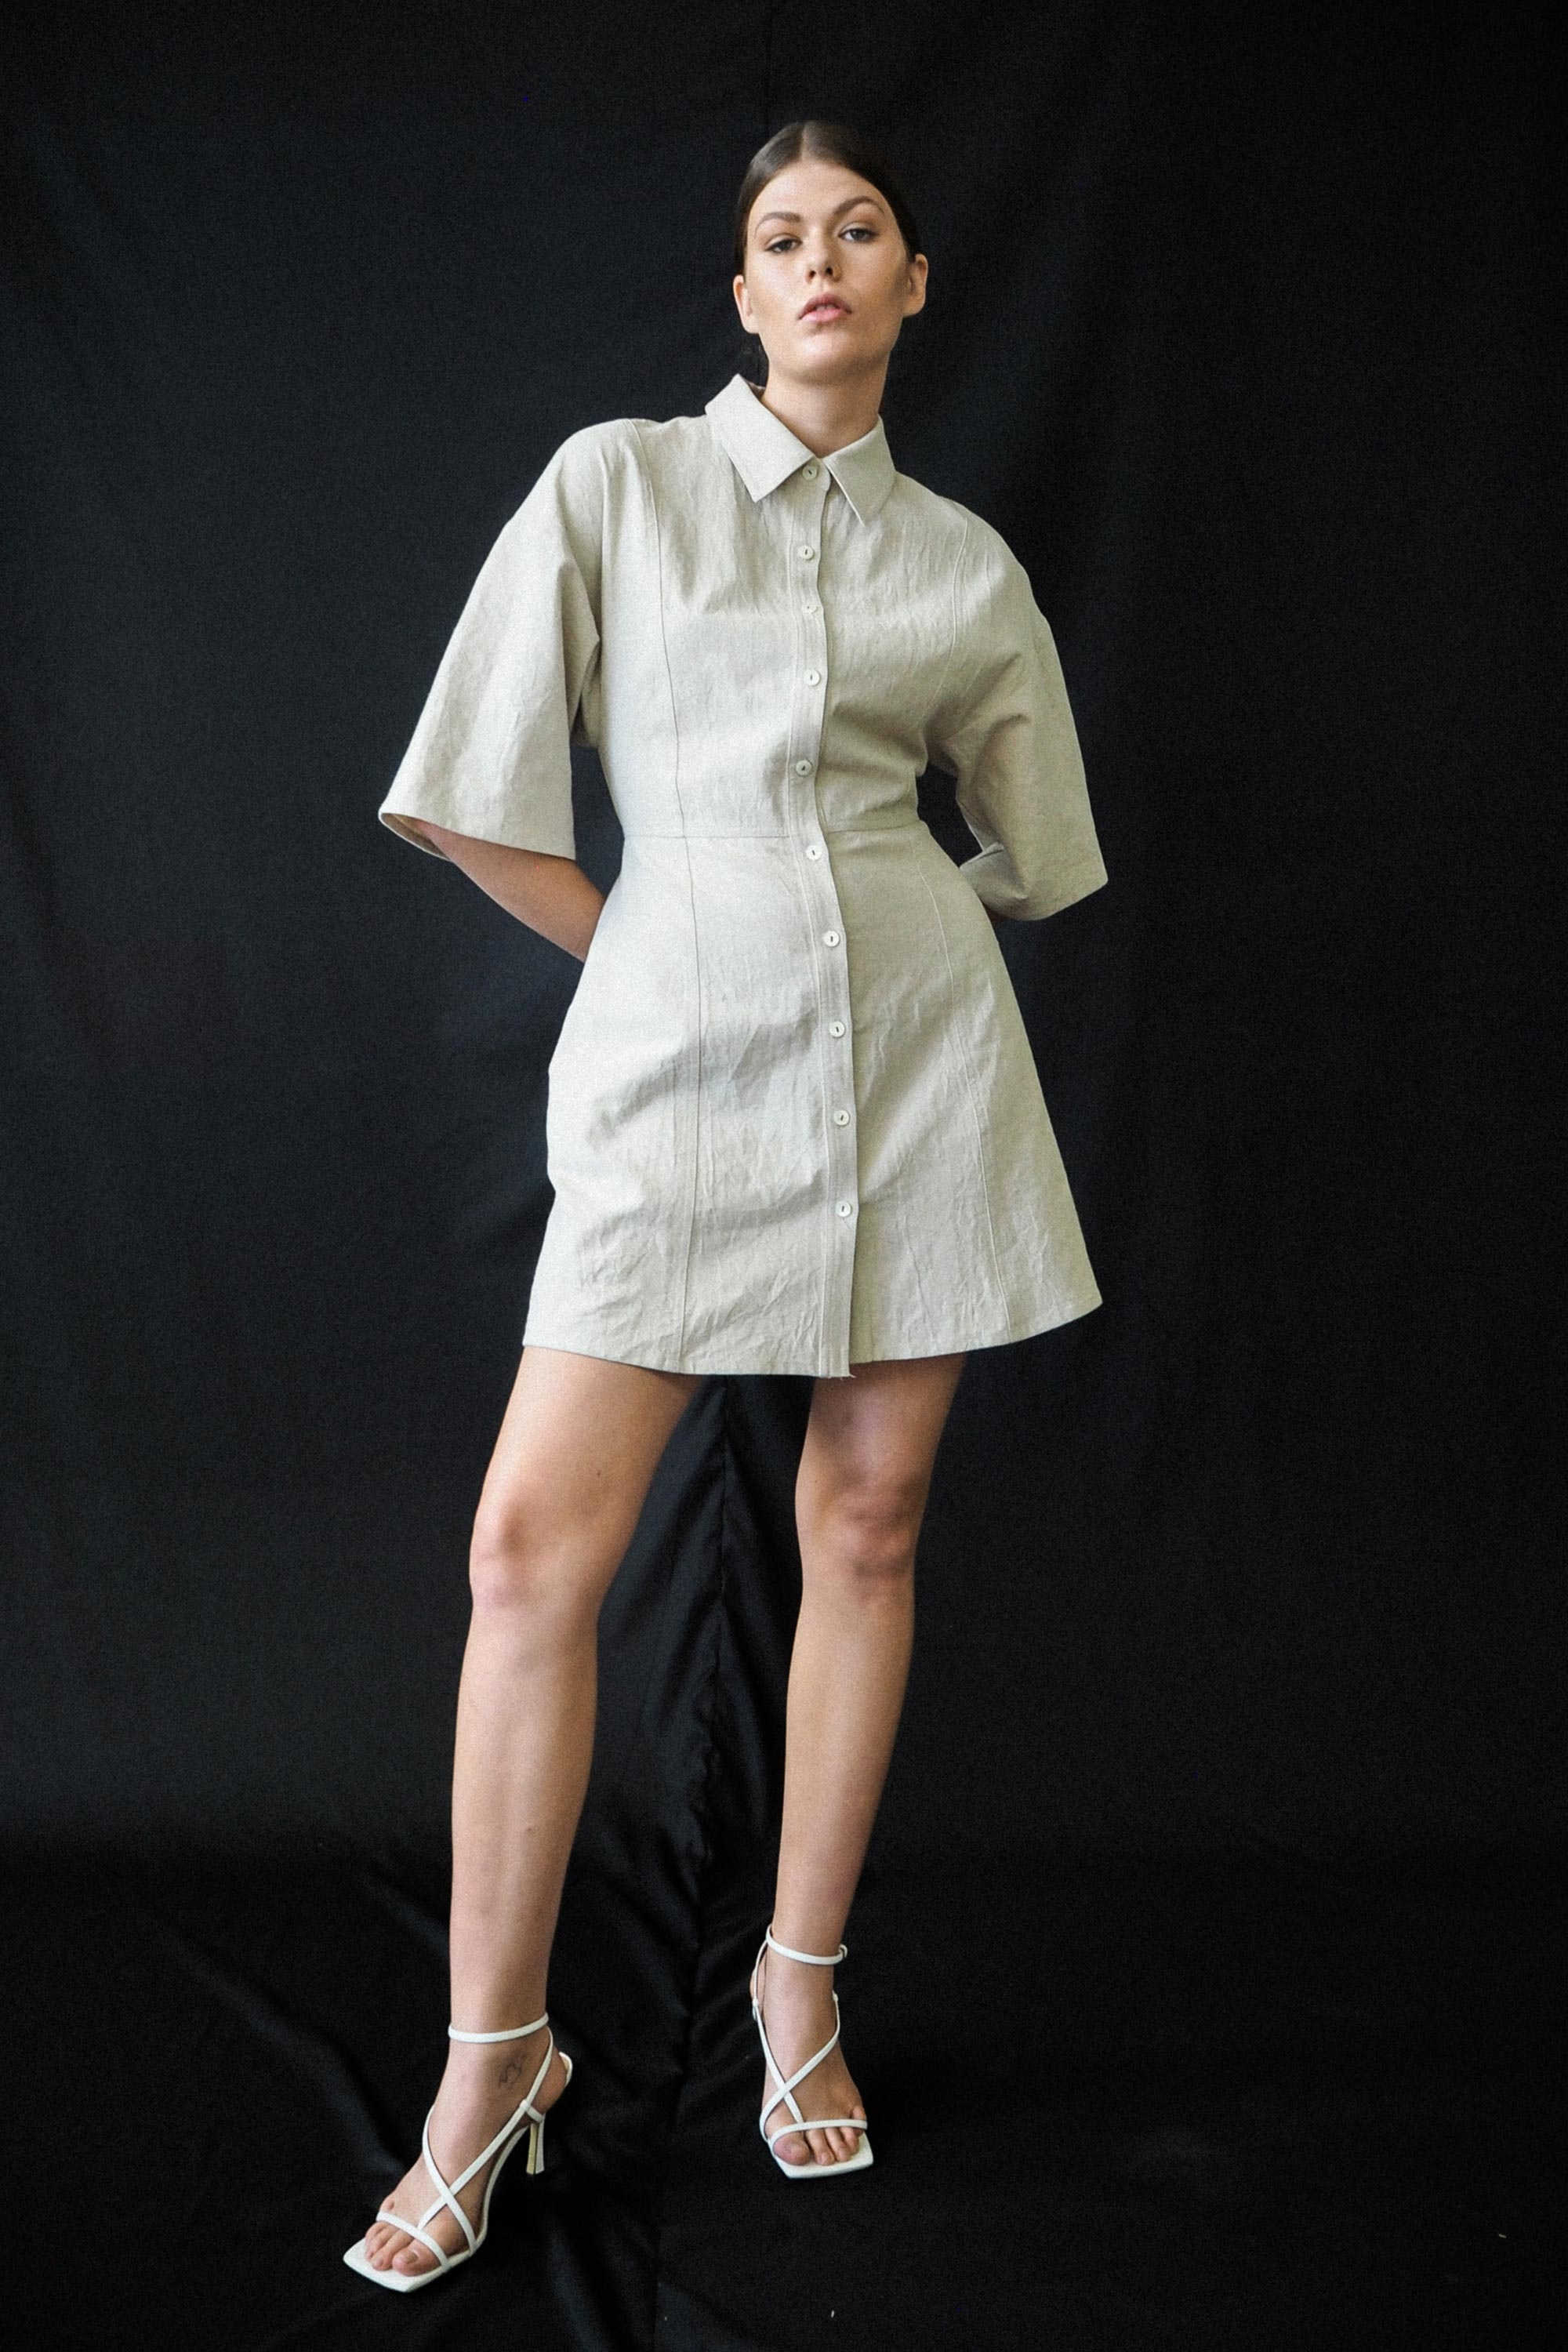 Istar Shirt Dress Ricochet SS20 Collection NZ Sustainable Fashion Desi…